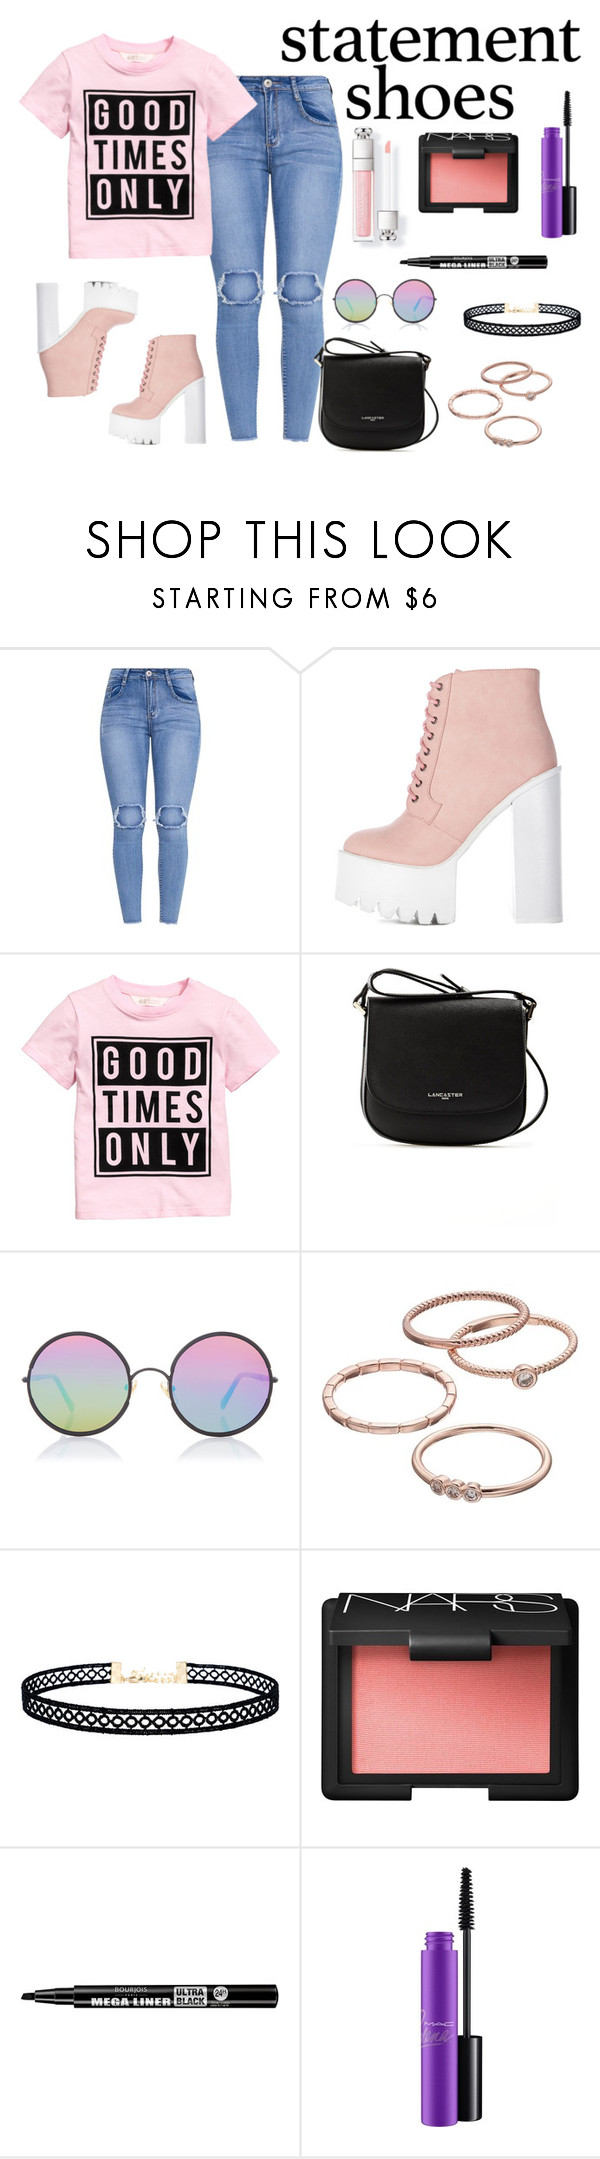 """Double Statement Shoes"" by shosho-mahmmod ❤ liked on Polyvore featuring Lancaster, Sunday Somewhere, LC Lauren Conrad, LULUS, NARS Cosmetics, Bourjois, MAC Cosmetics, shoes, trend and statement"